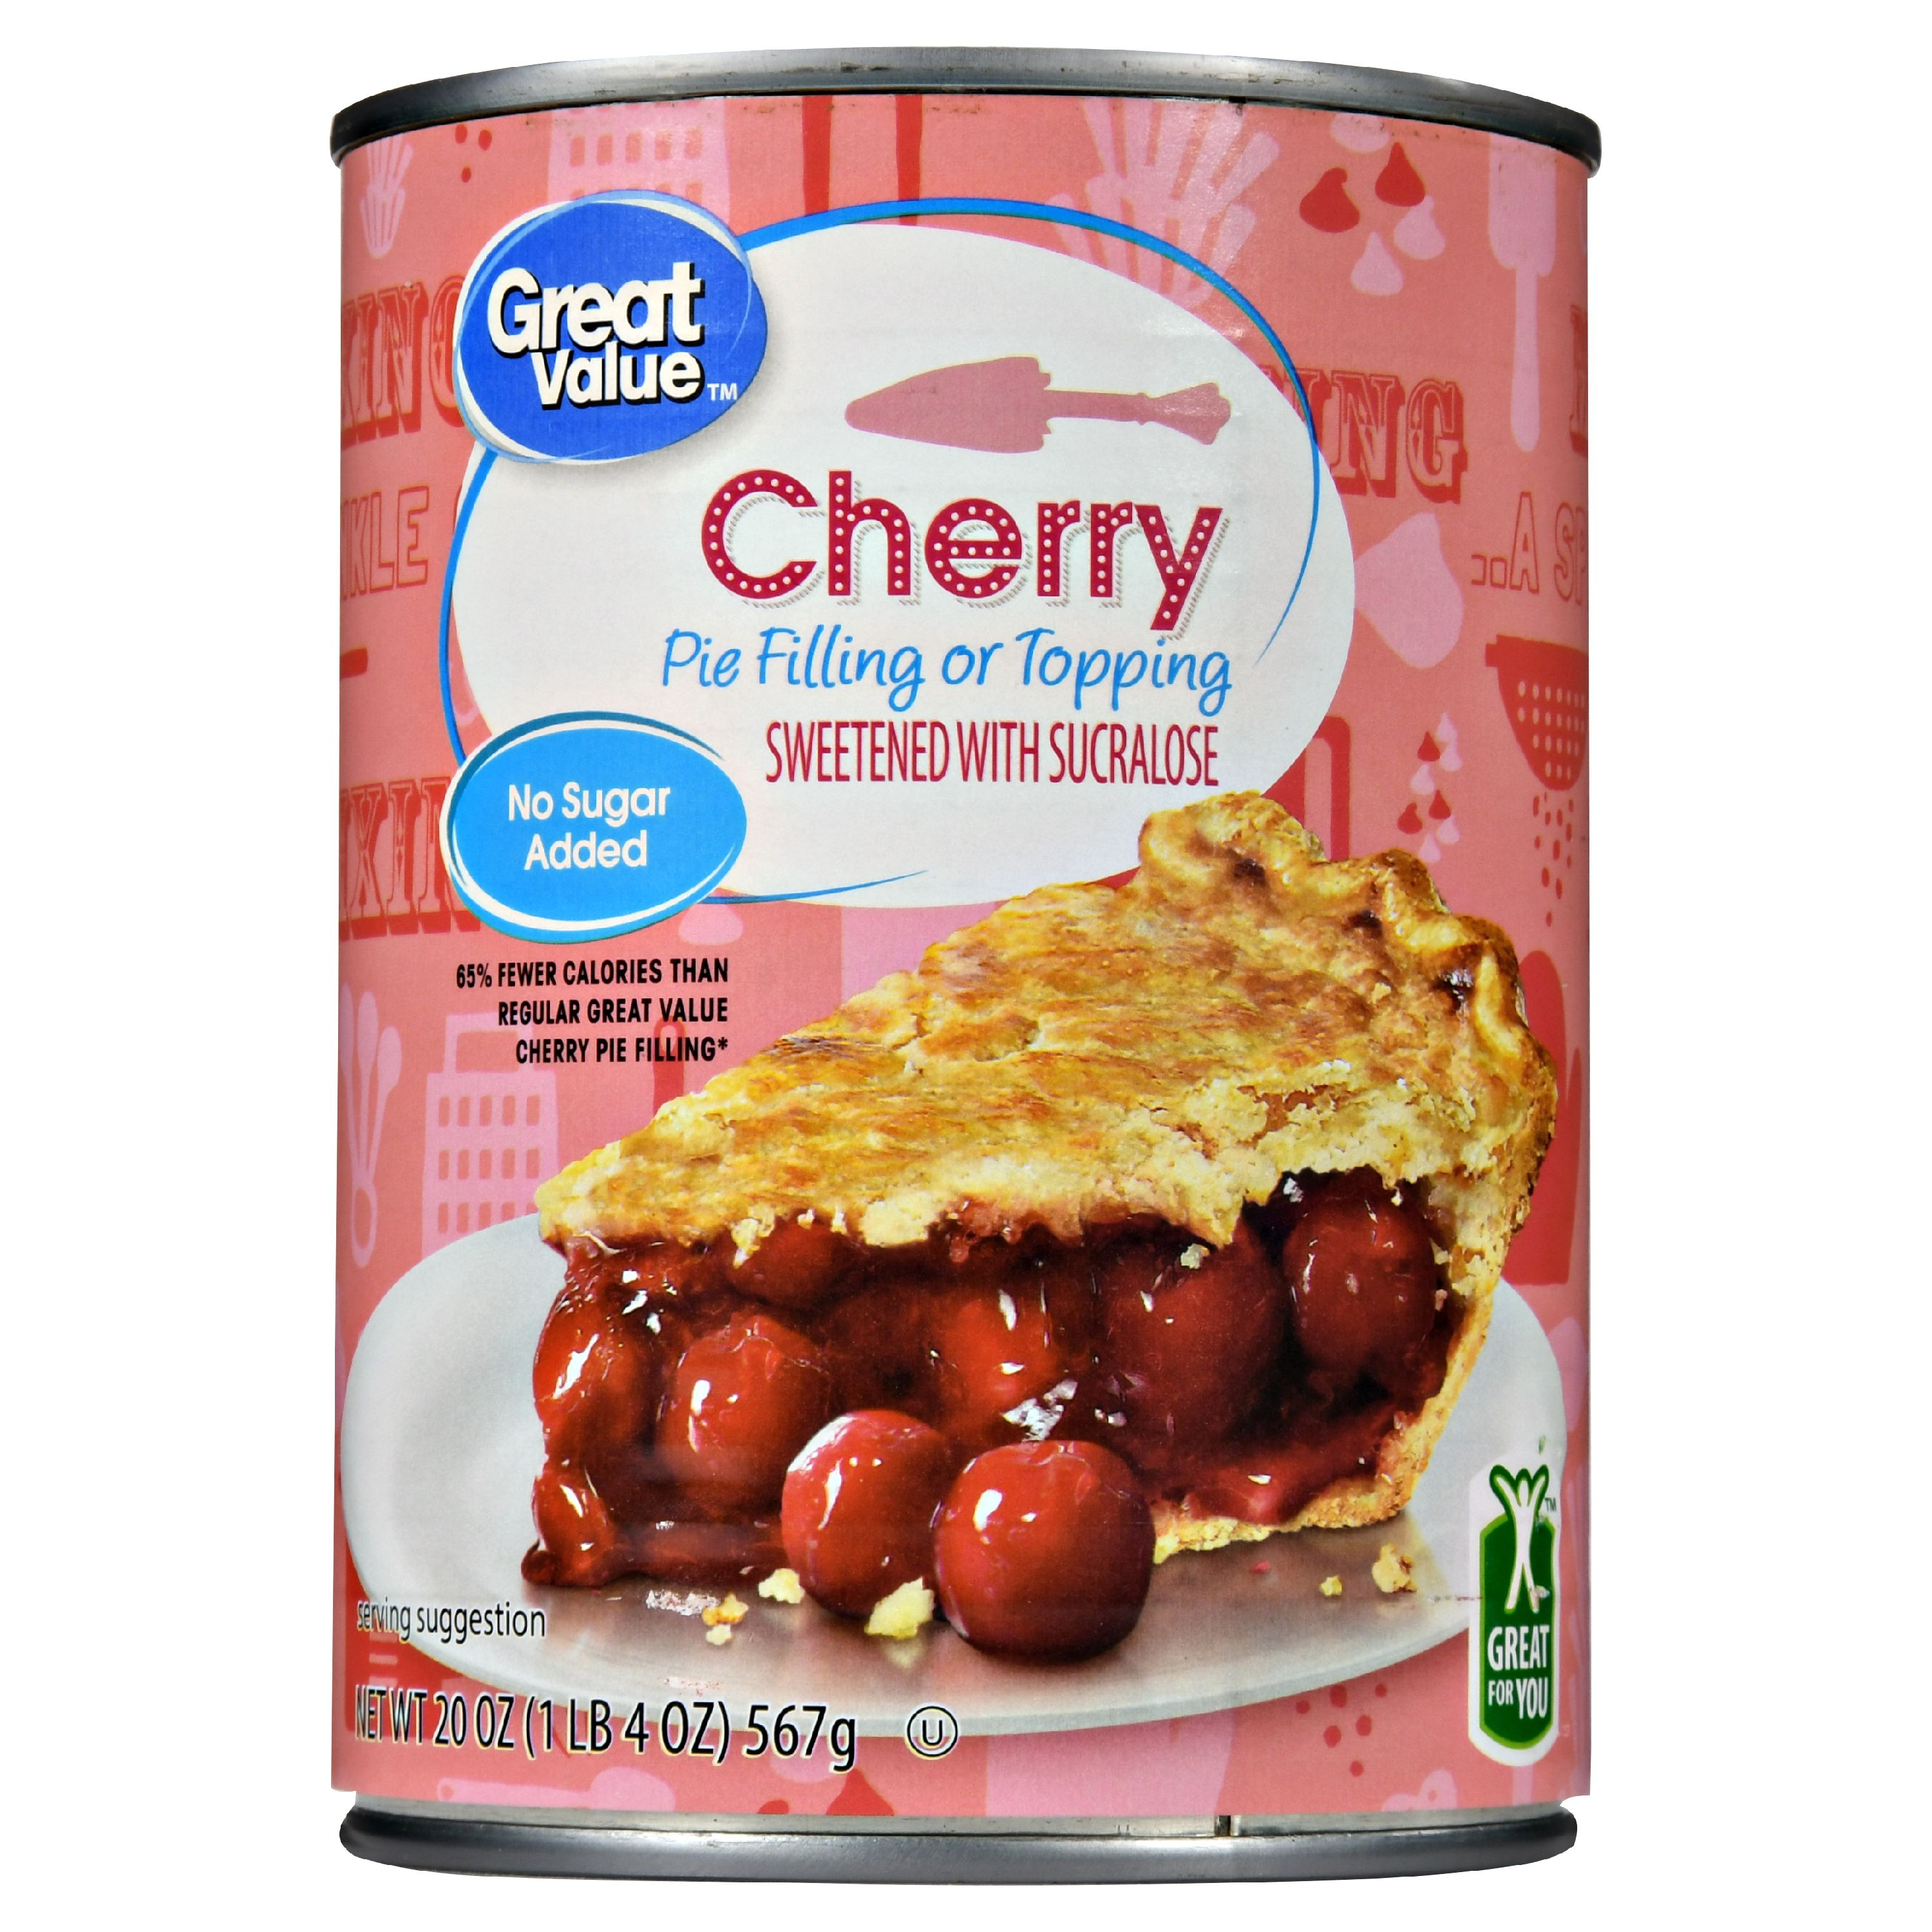 Great Value Pie Filling or Topping No Sugar Added, Cherry, 20 oz by Wal-Mart Stores, Inc.